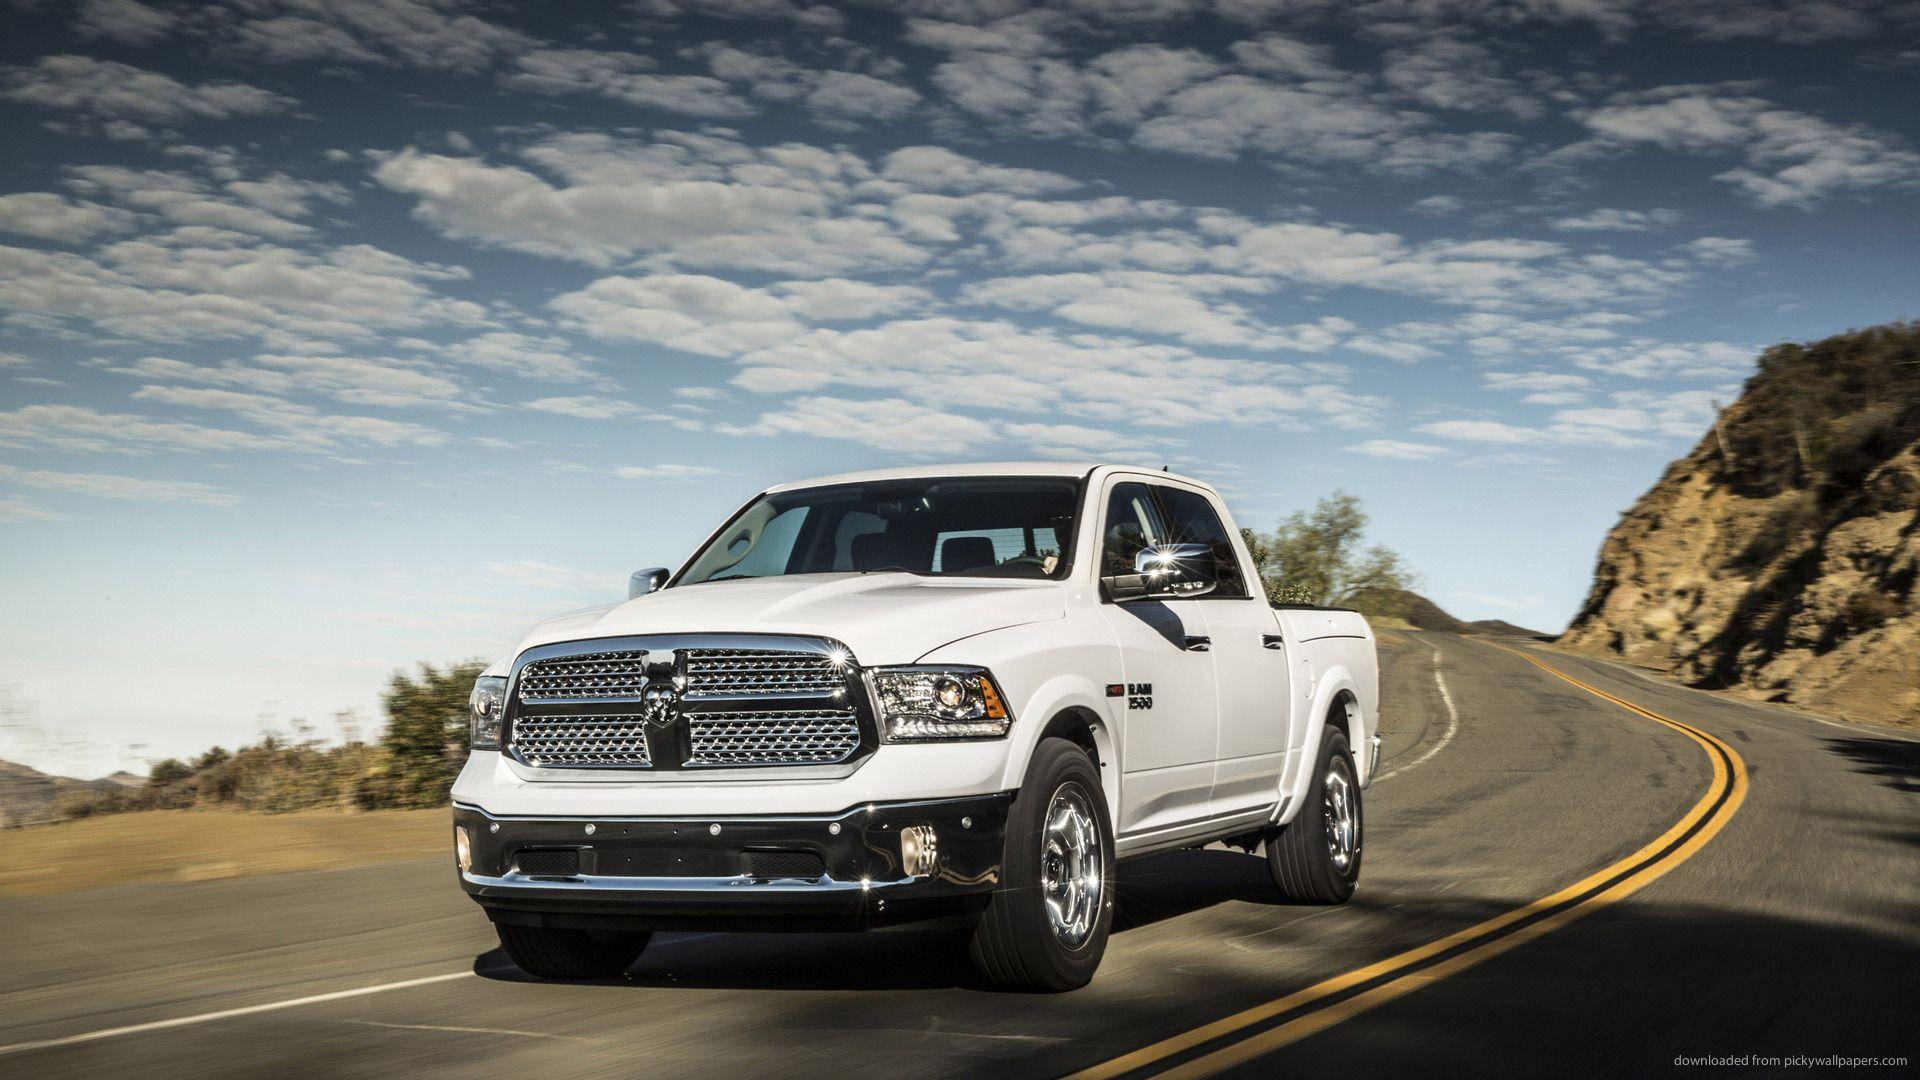 Dodge Ram 1500 Full HD Wallpaper and Background Image | 1920x1080 ...